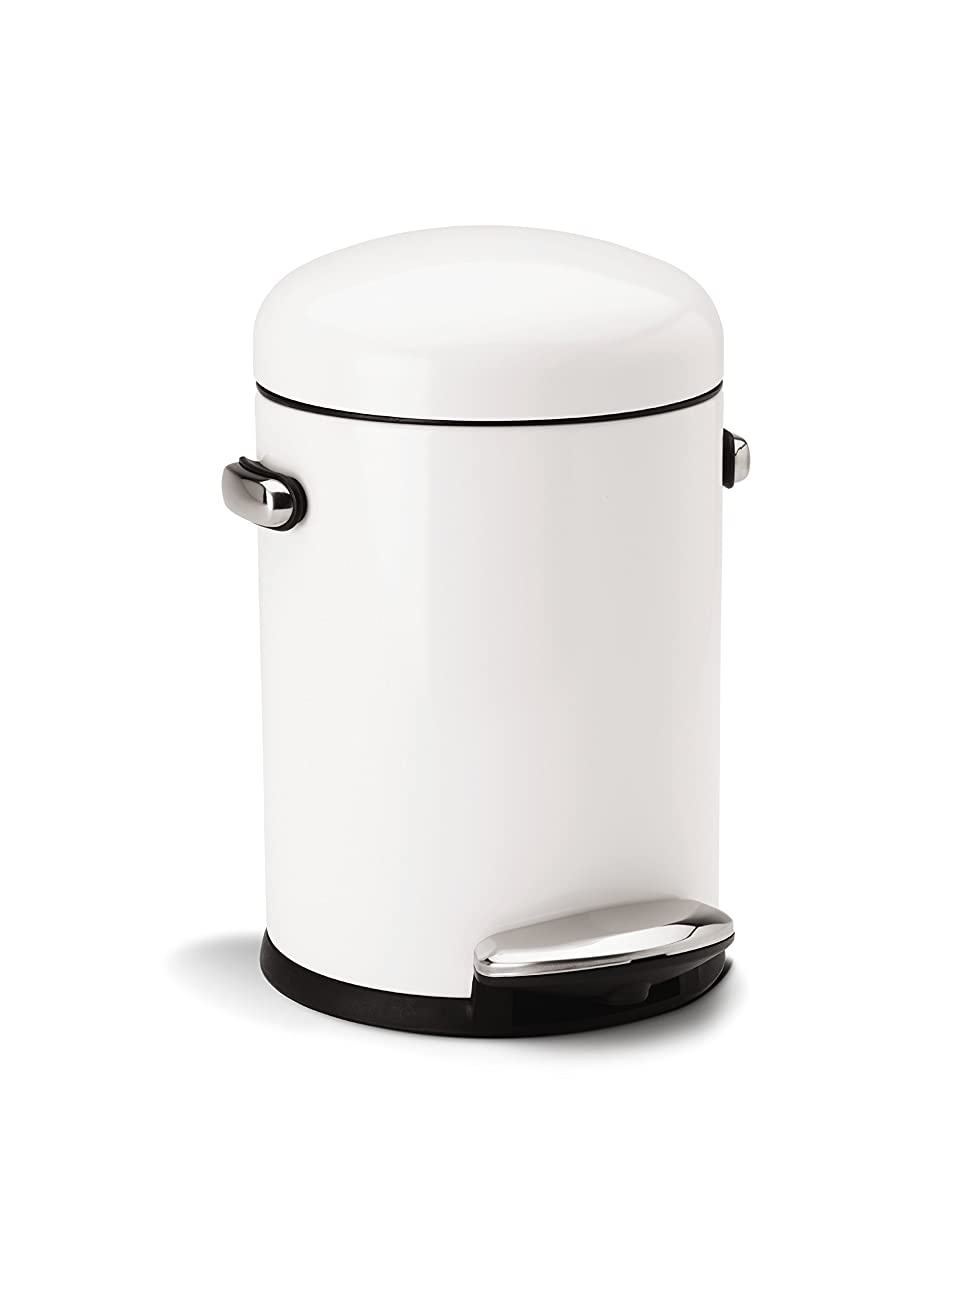 simplehuman Round Retro Step Trash Can, White Steel, 4.5 L / 1.2 Gal 0